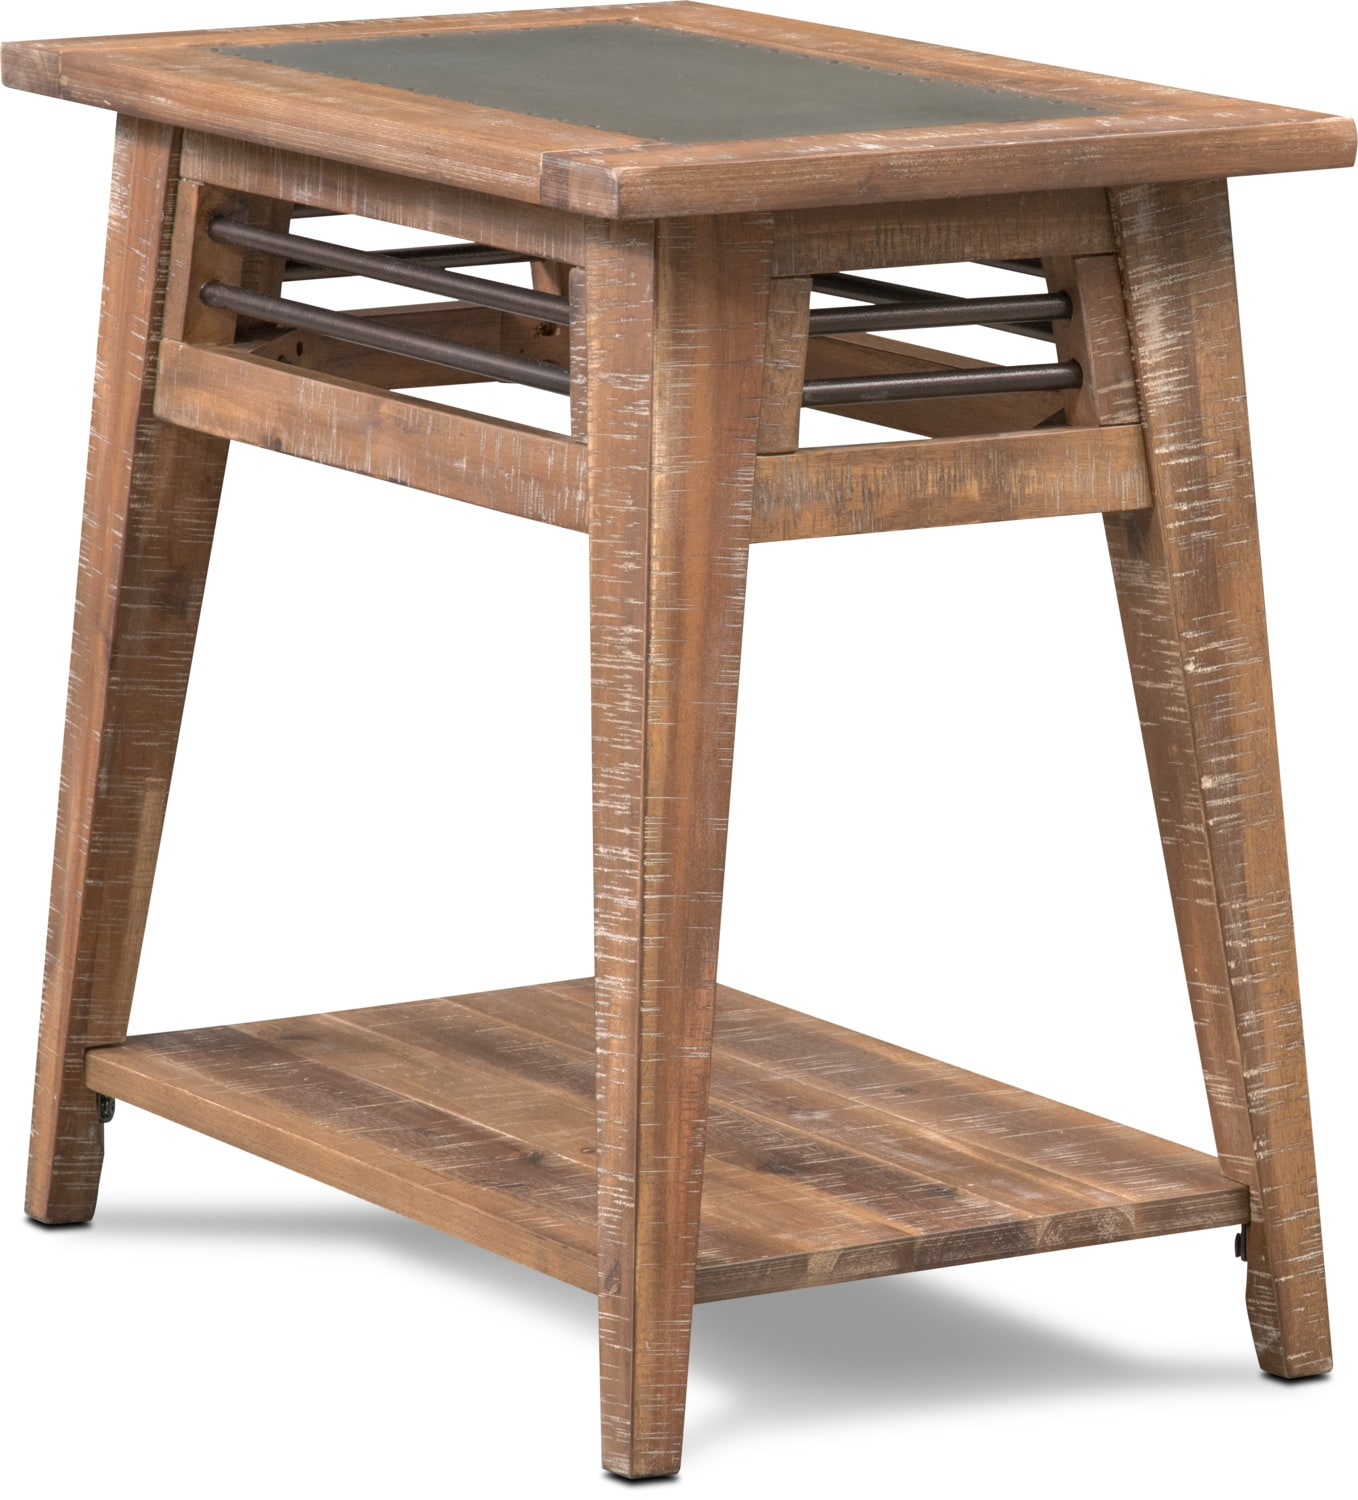 Accent and Occasional Furniture - Colt Chairside Table - Distressed Natural